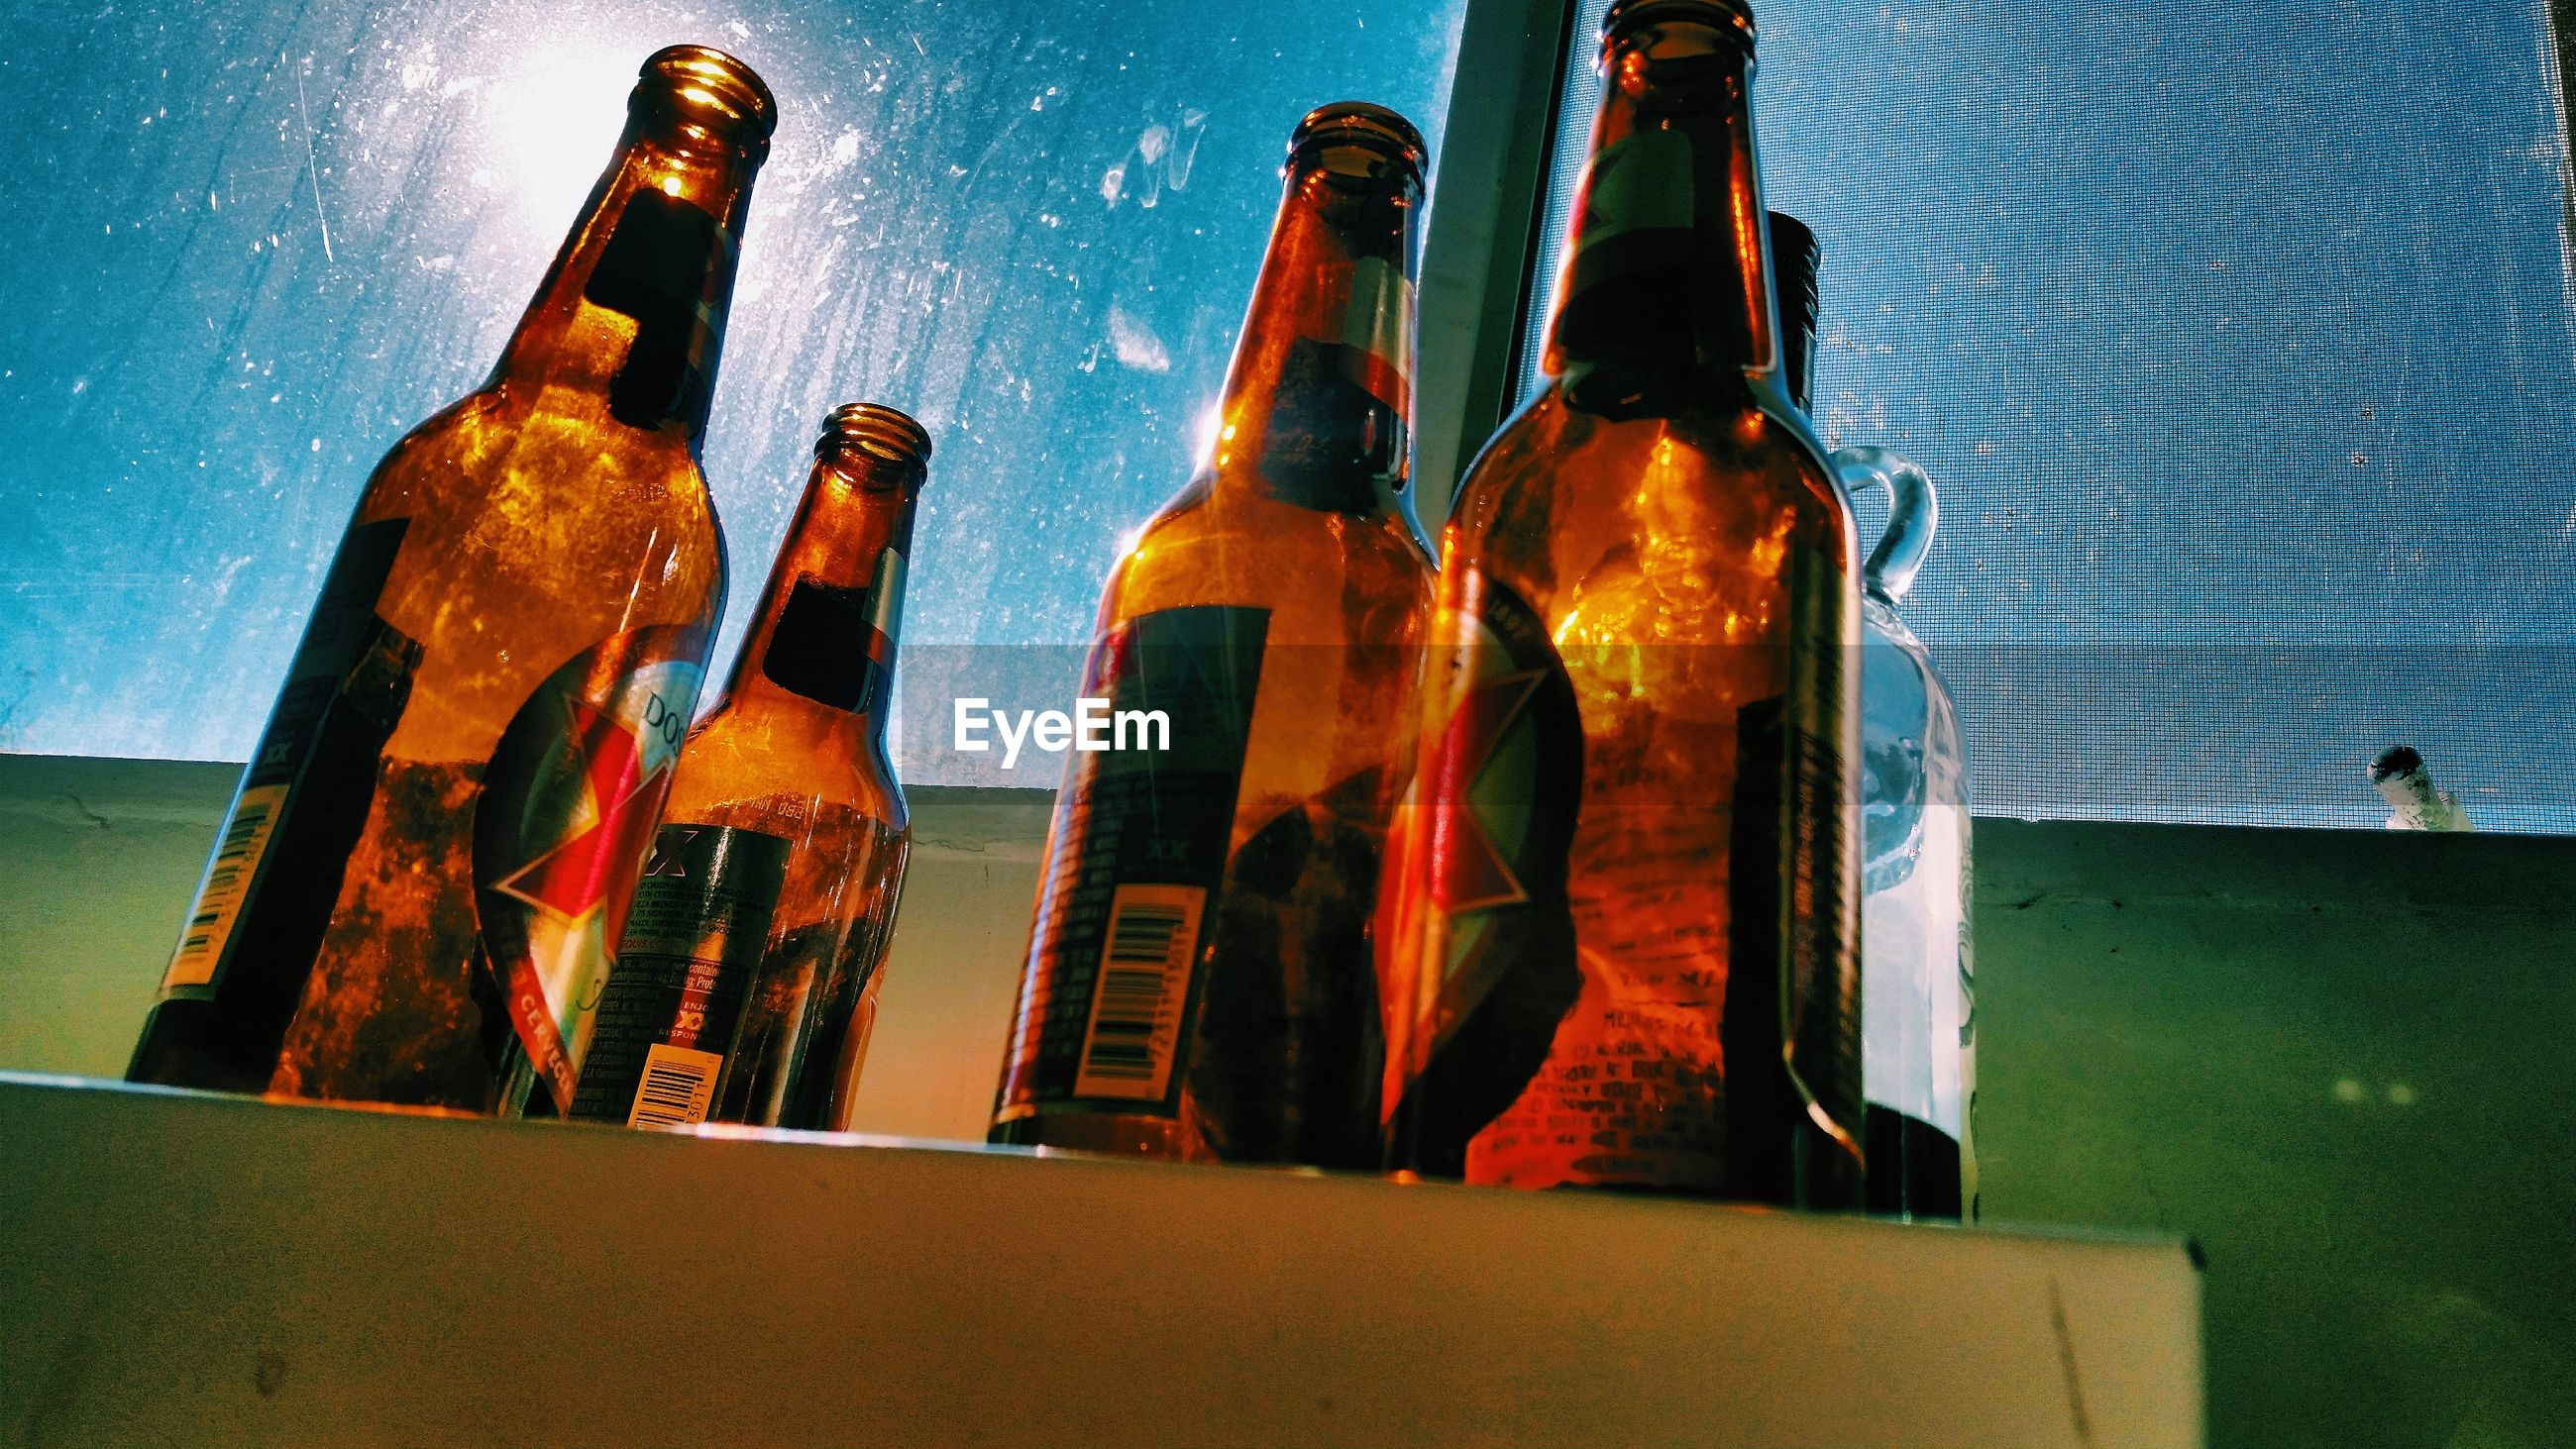 LOW ANGLE VIEW OF BEER BOTTLES ON GLASS